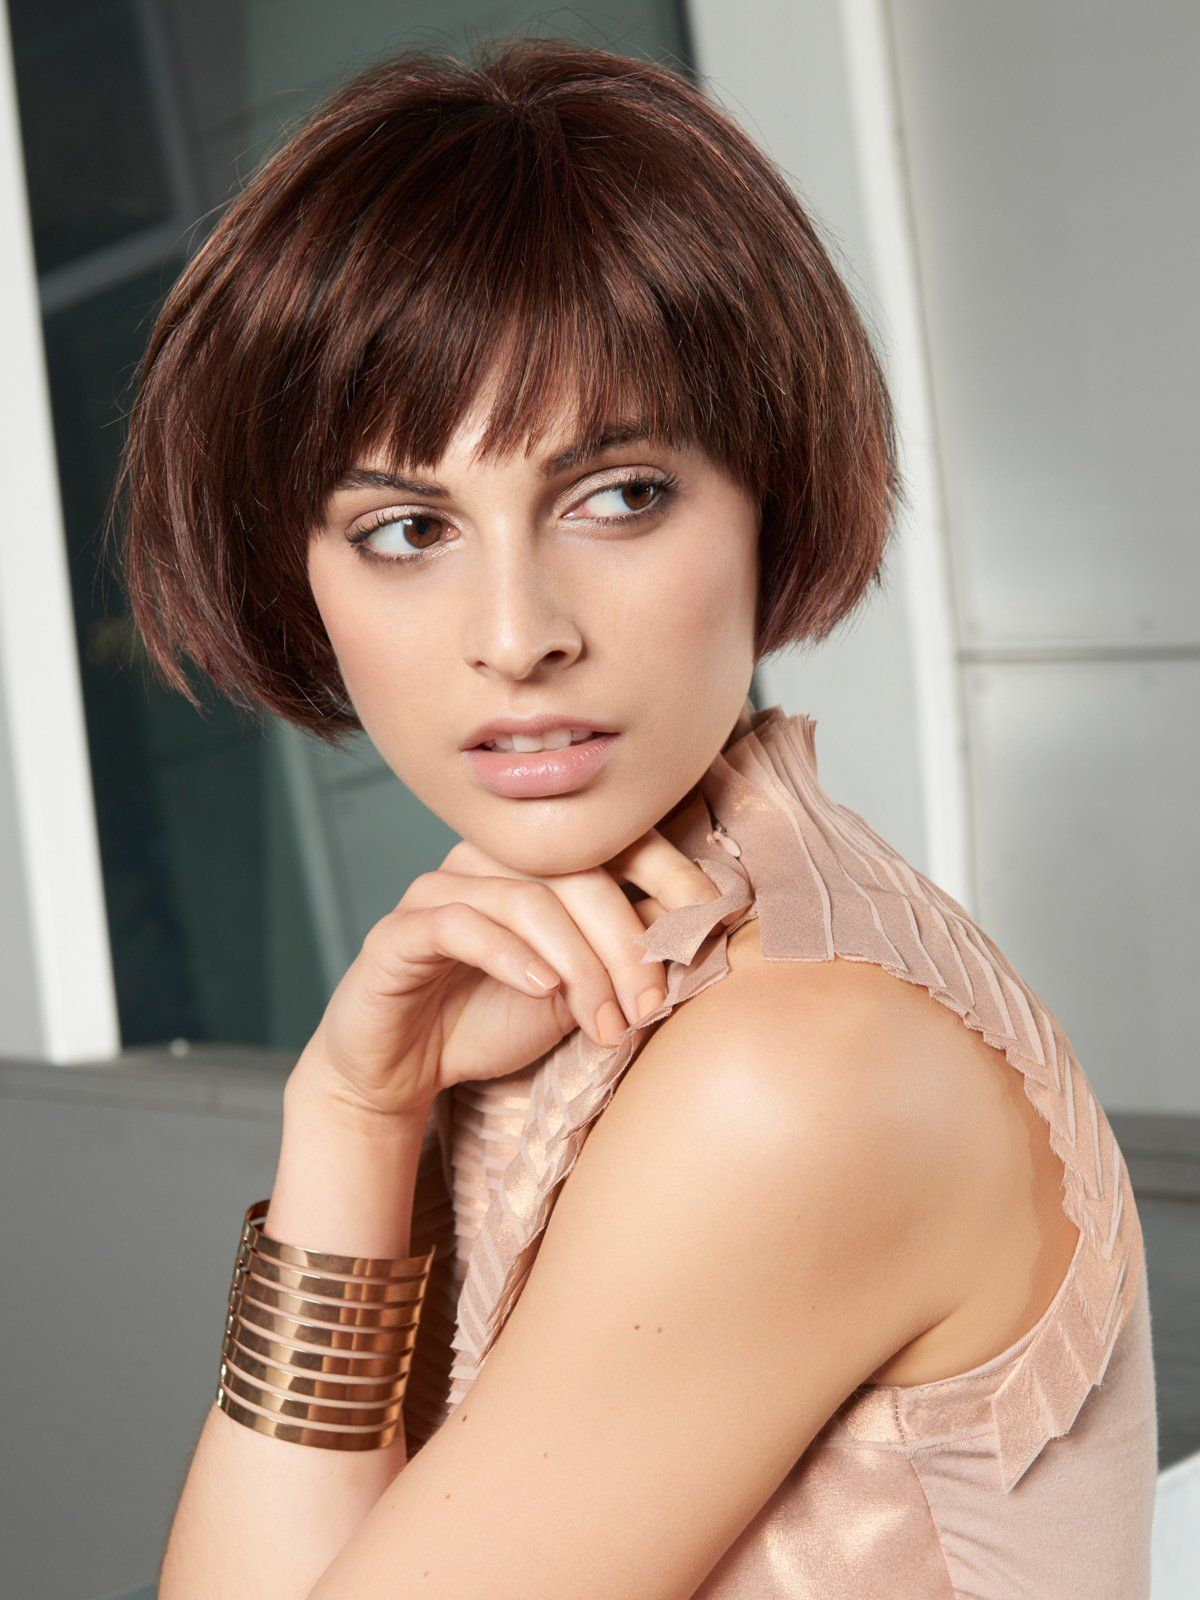 Mittellange Frisurentrends 2018 Bobs Layered Bobs And Pixies